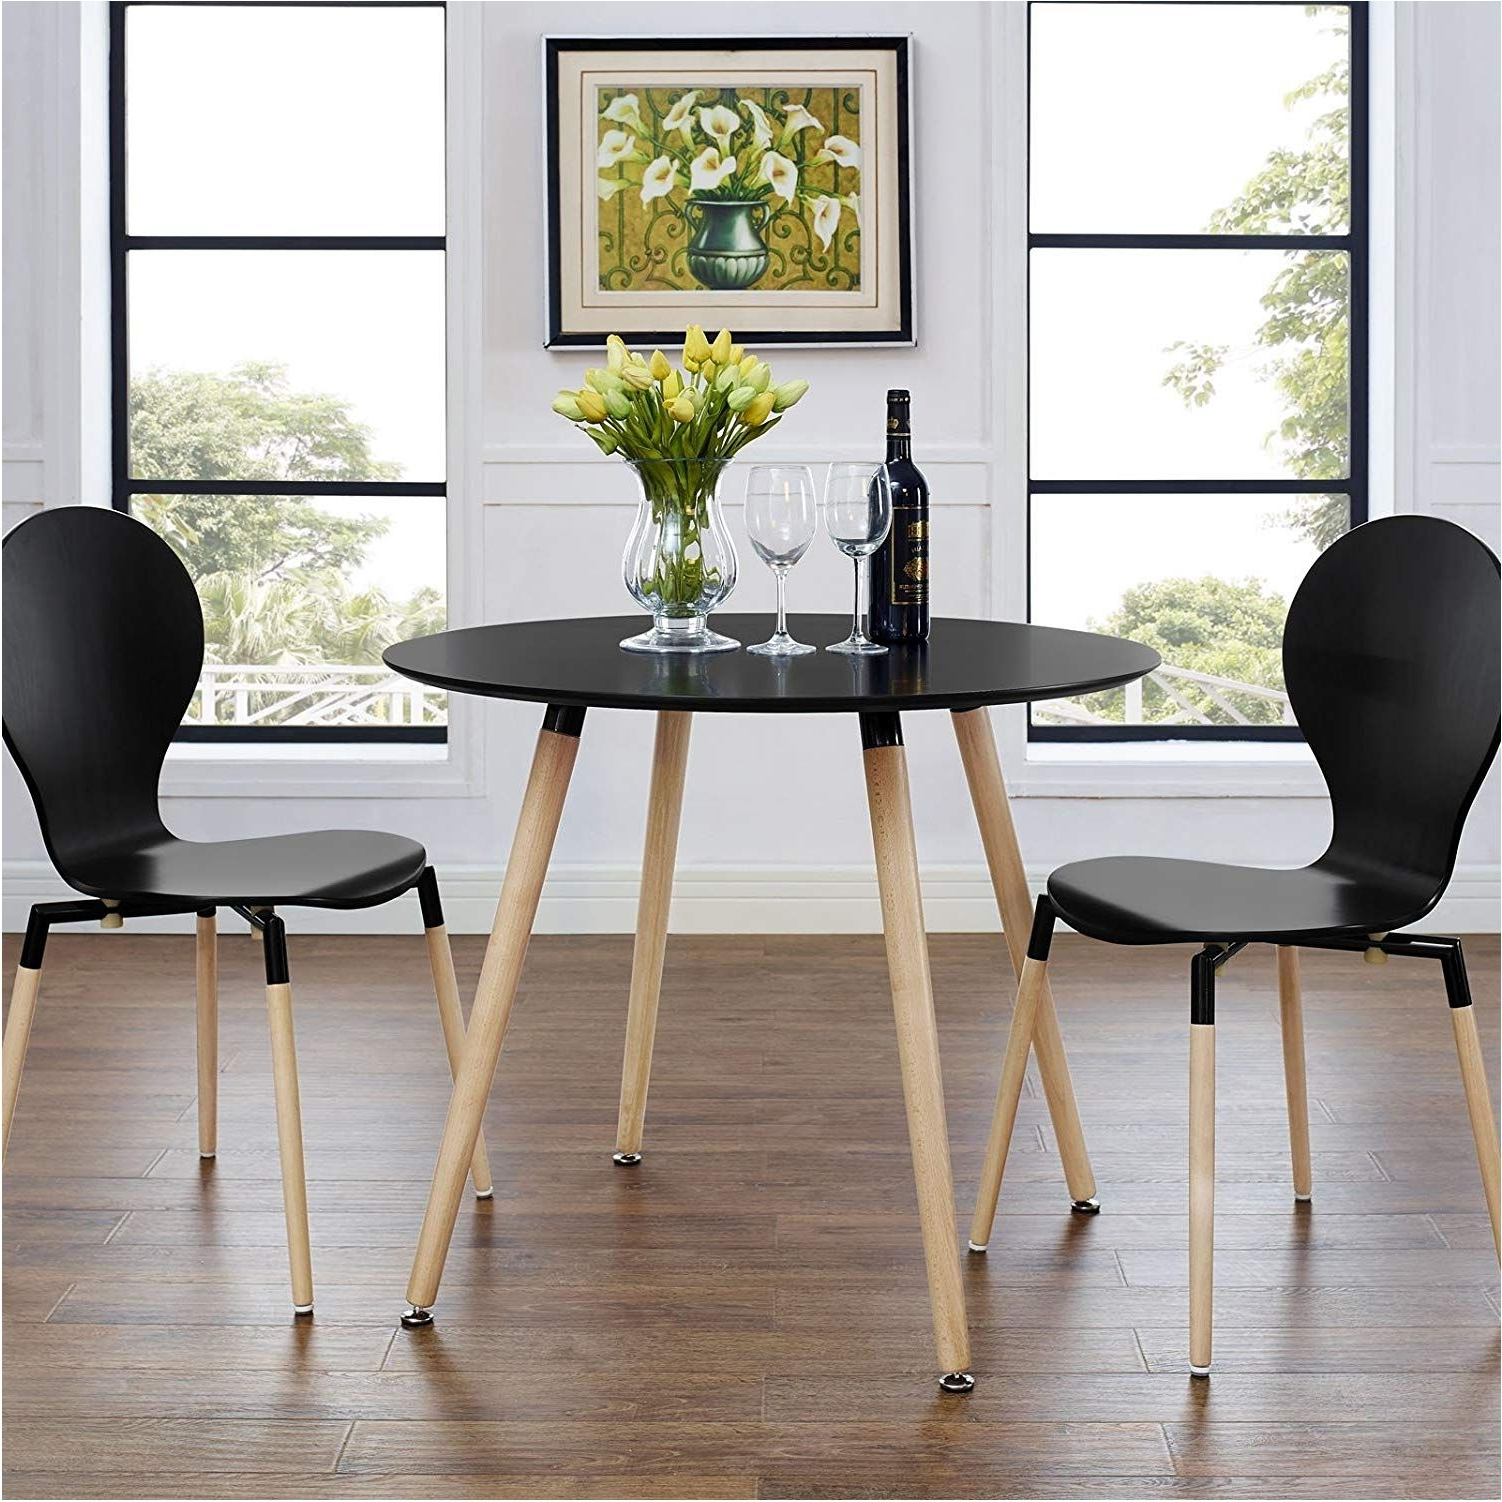 Brilliant Amazon Track Circular Dining Table Black Tables – Circular With Best And Newest Black Circular Dining Tables (Gallery 13 of 25)